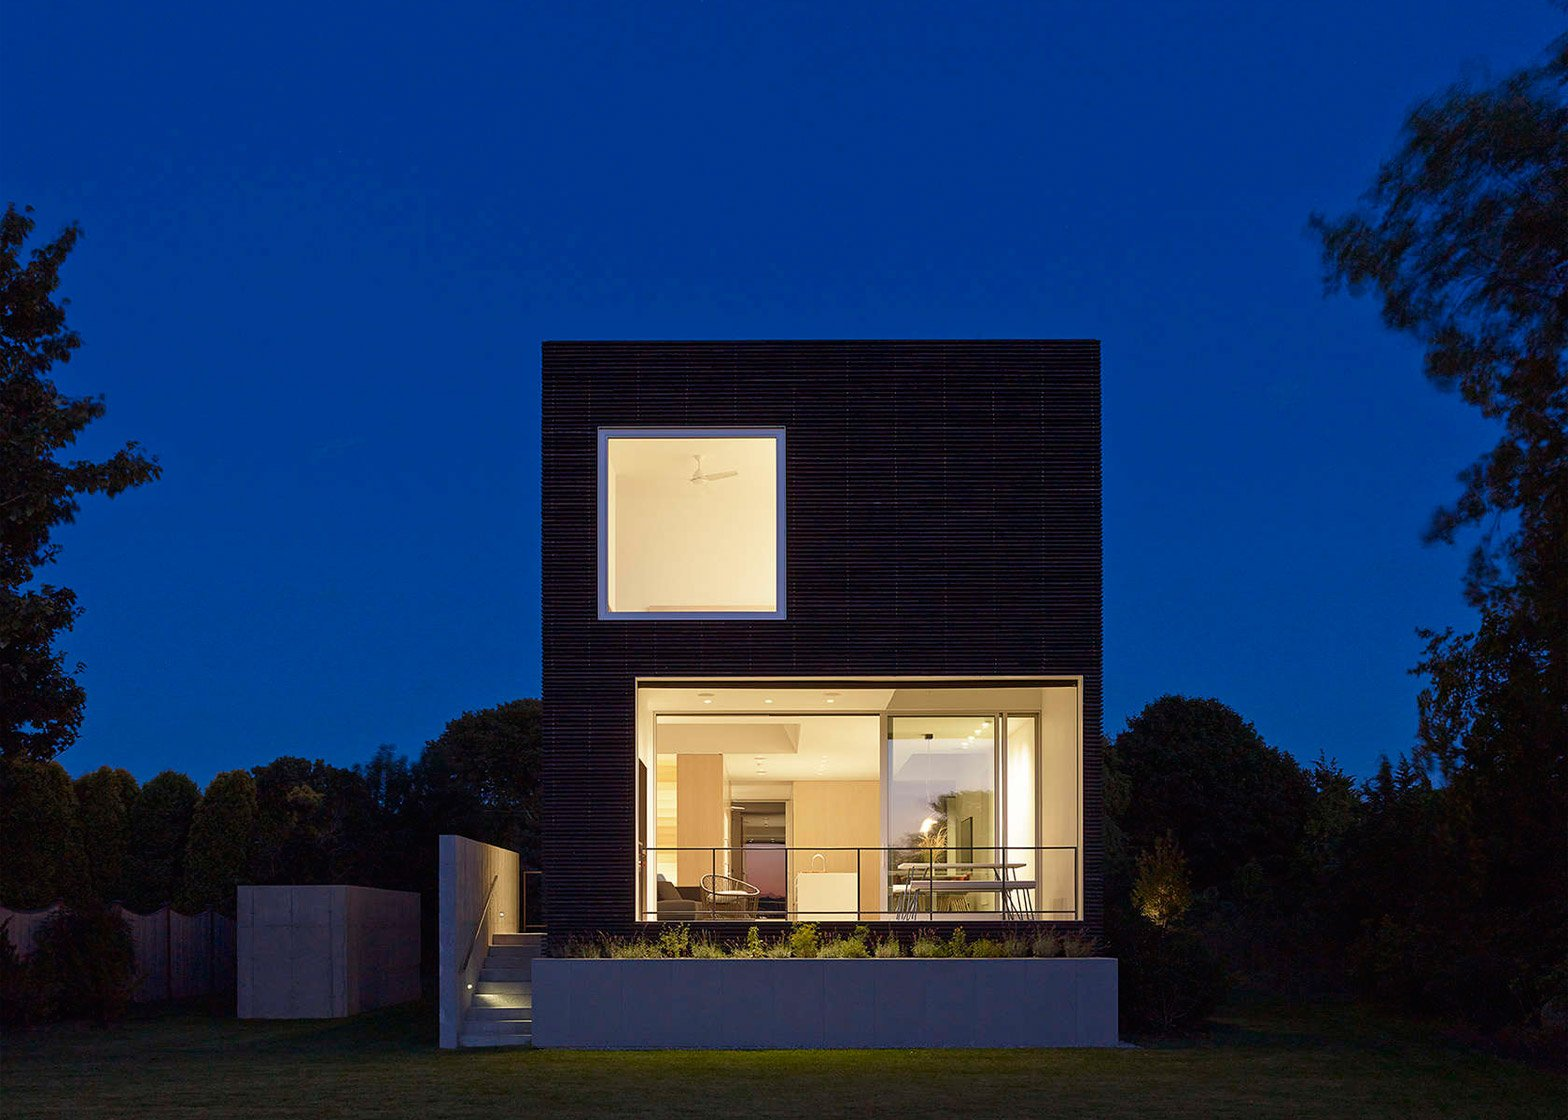 Quonochontaug House by Bernheimer Architecture